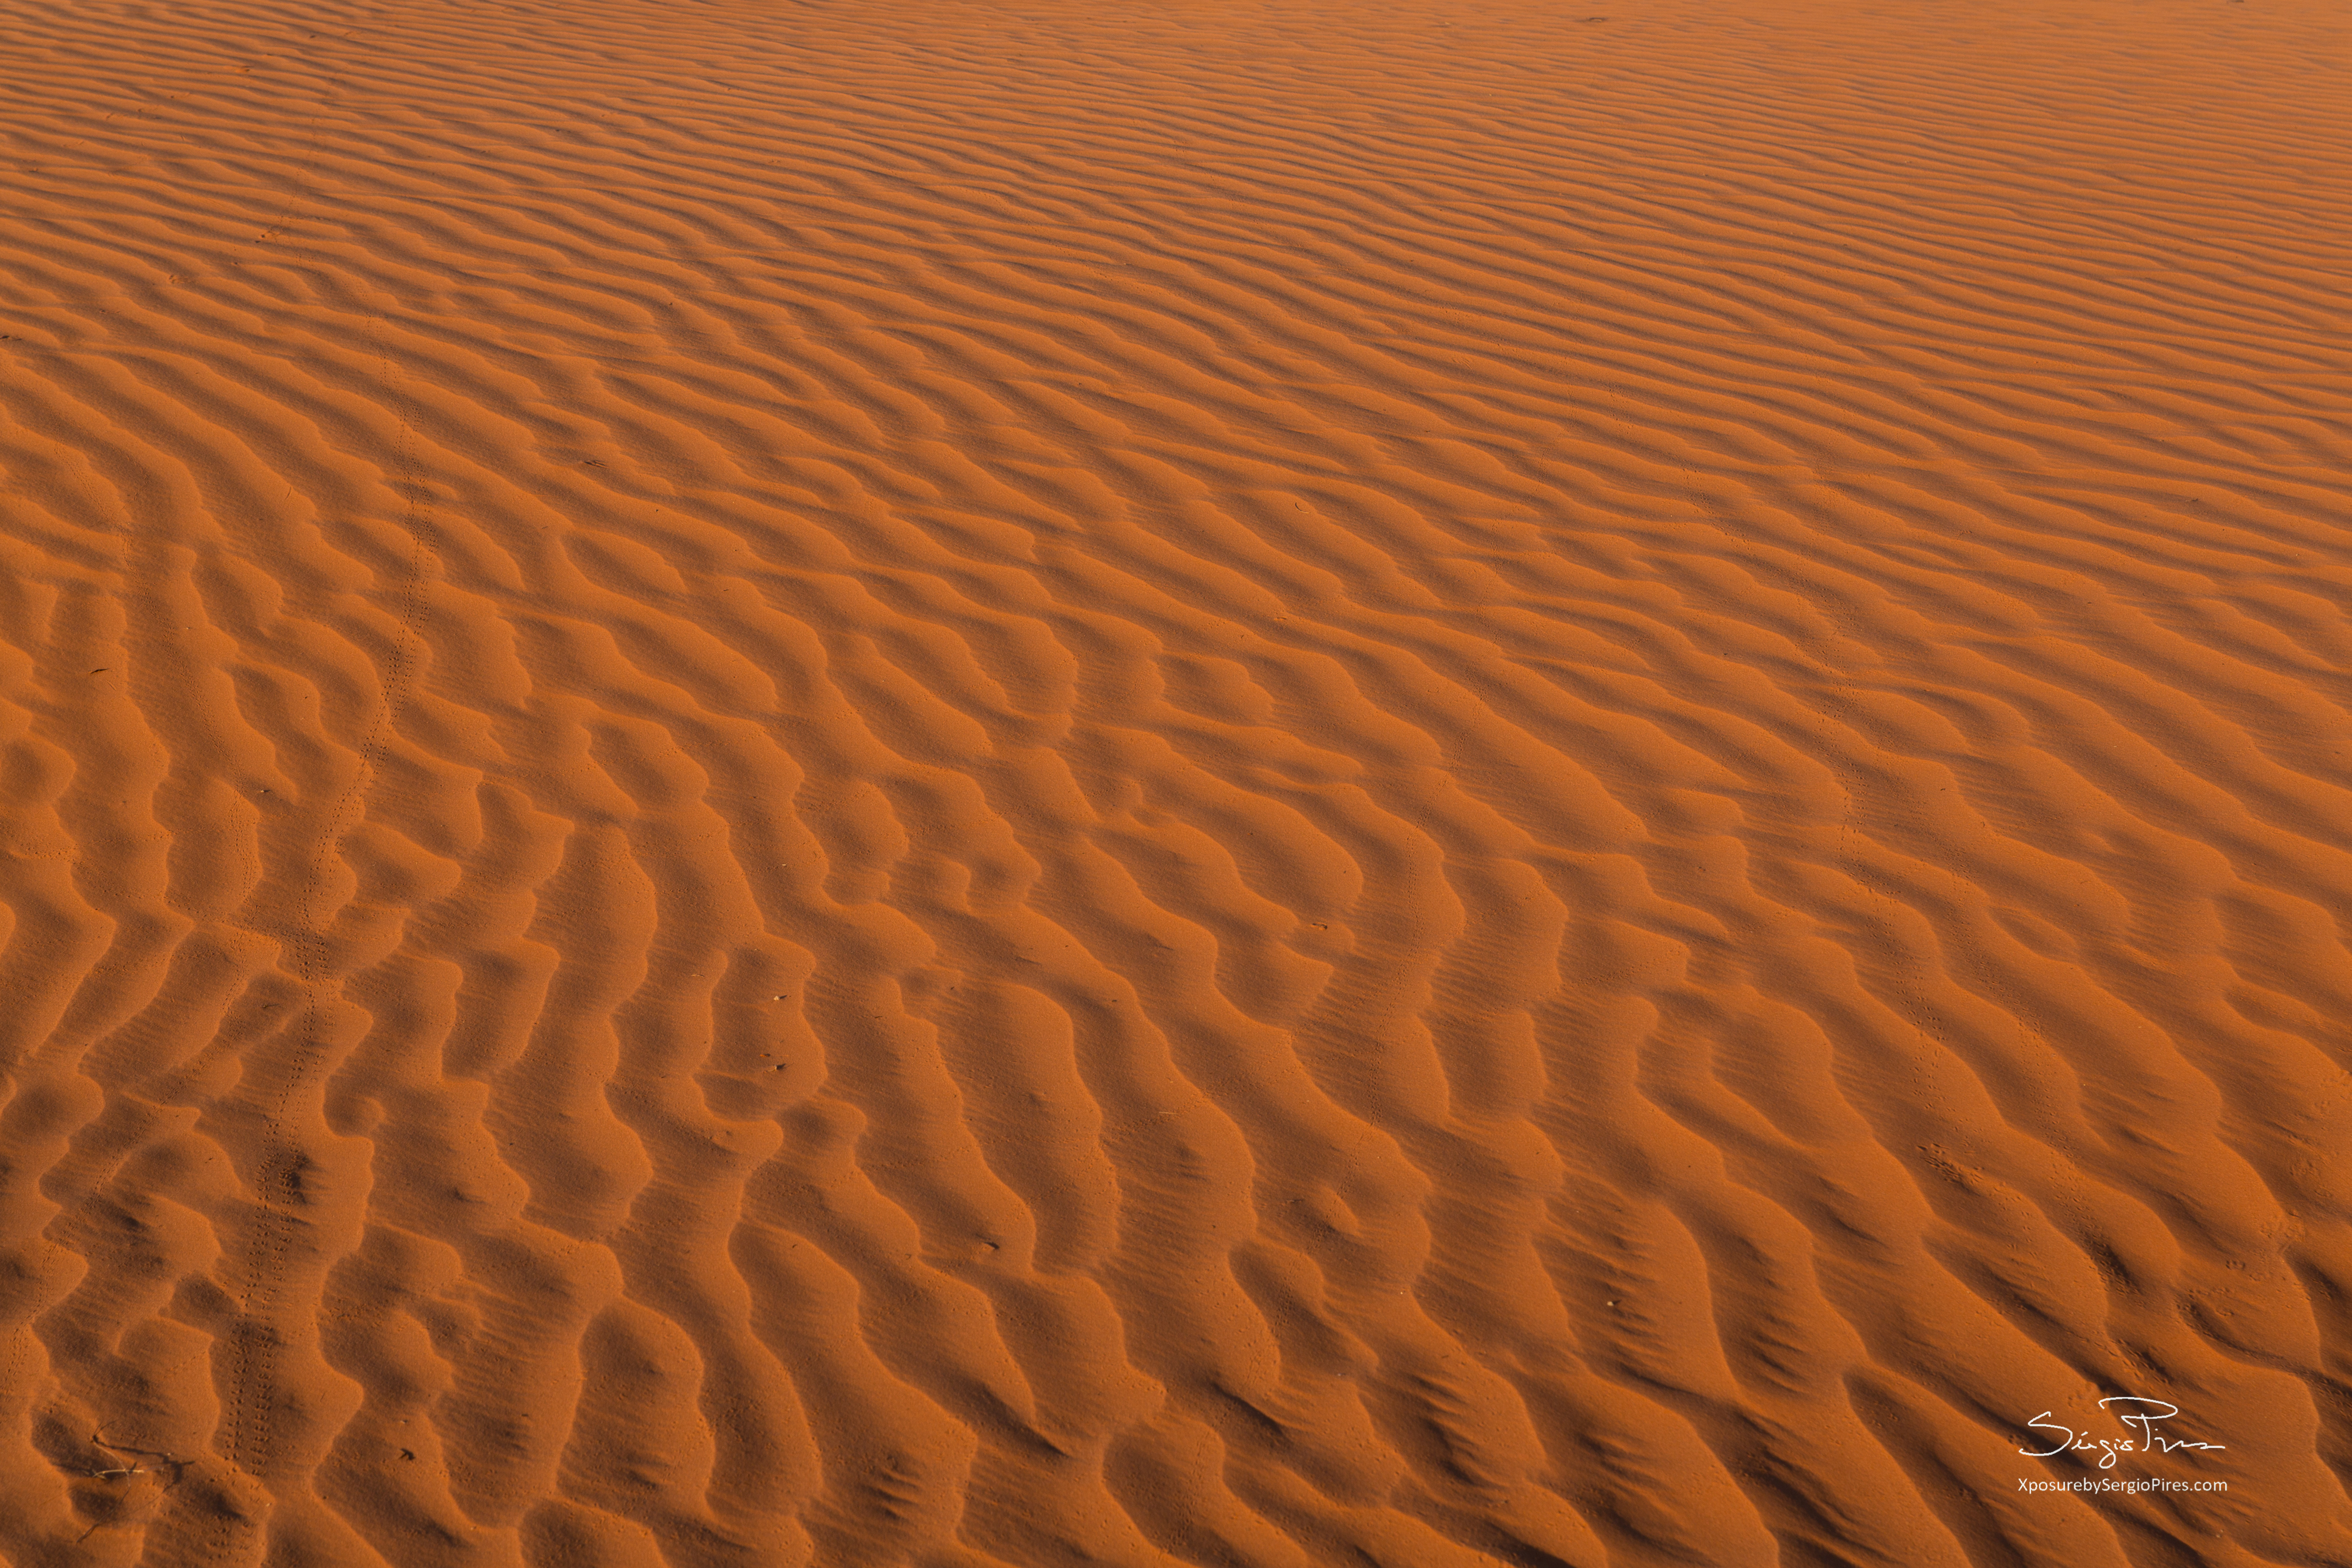 Sand rippels